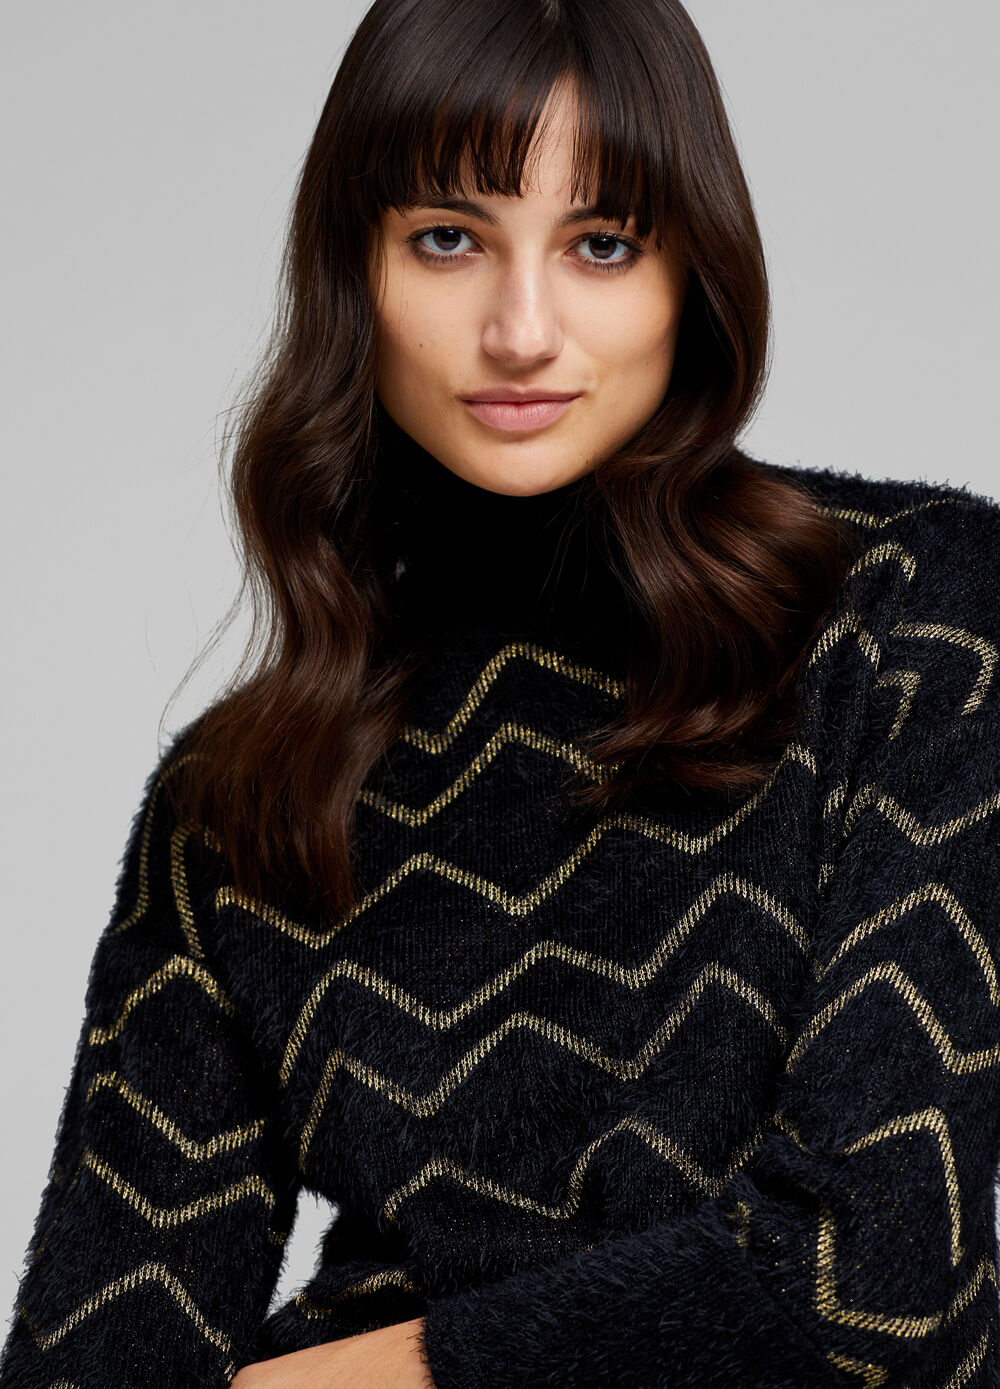 Turtleneck jumper with lurex and pattern